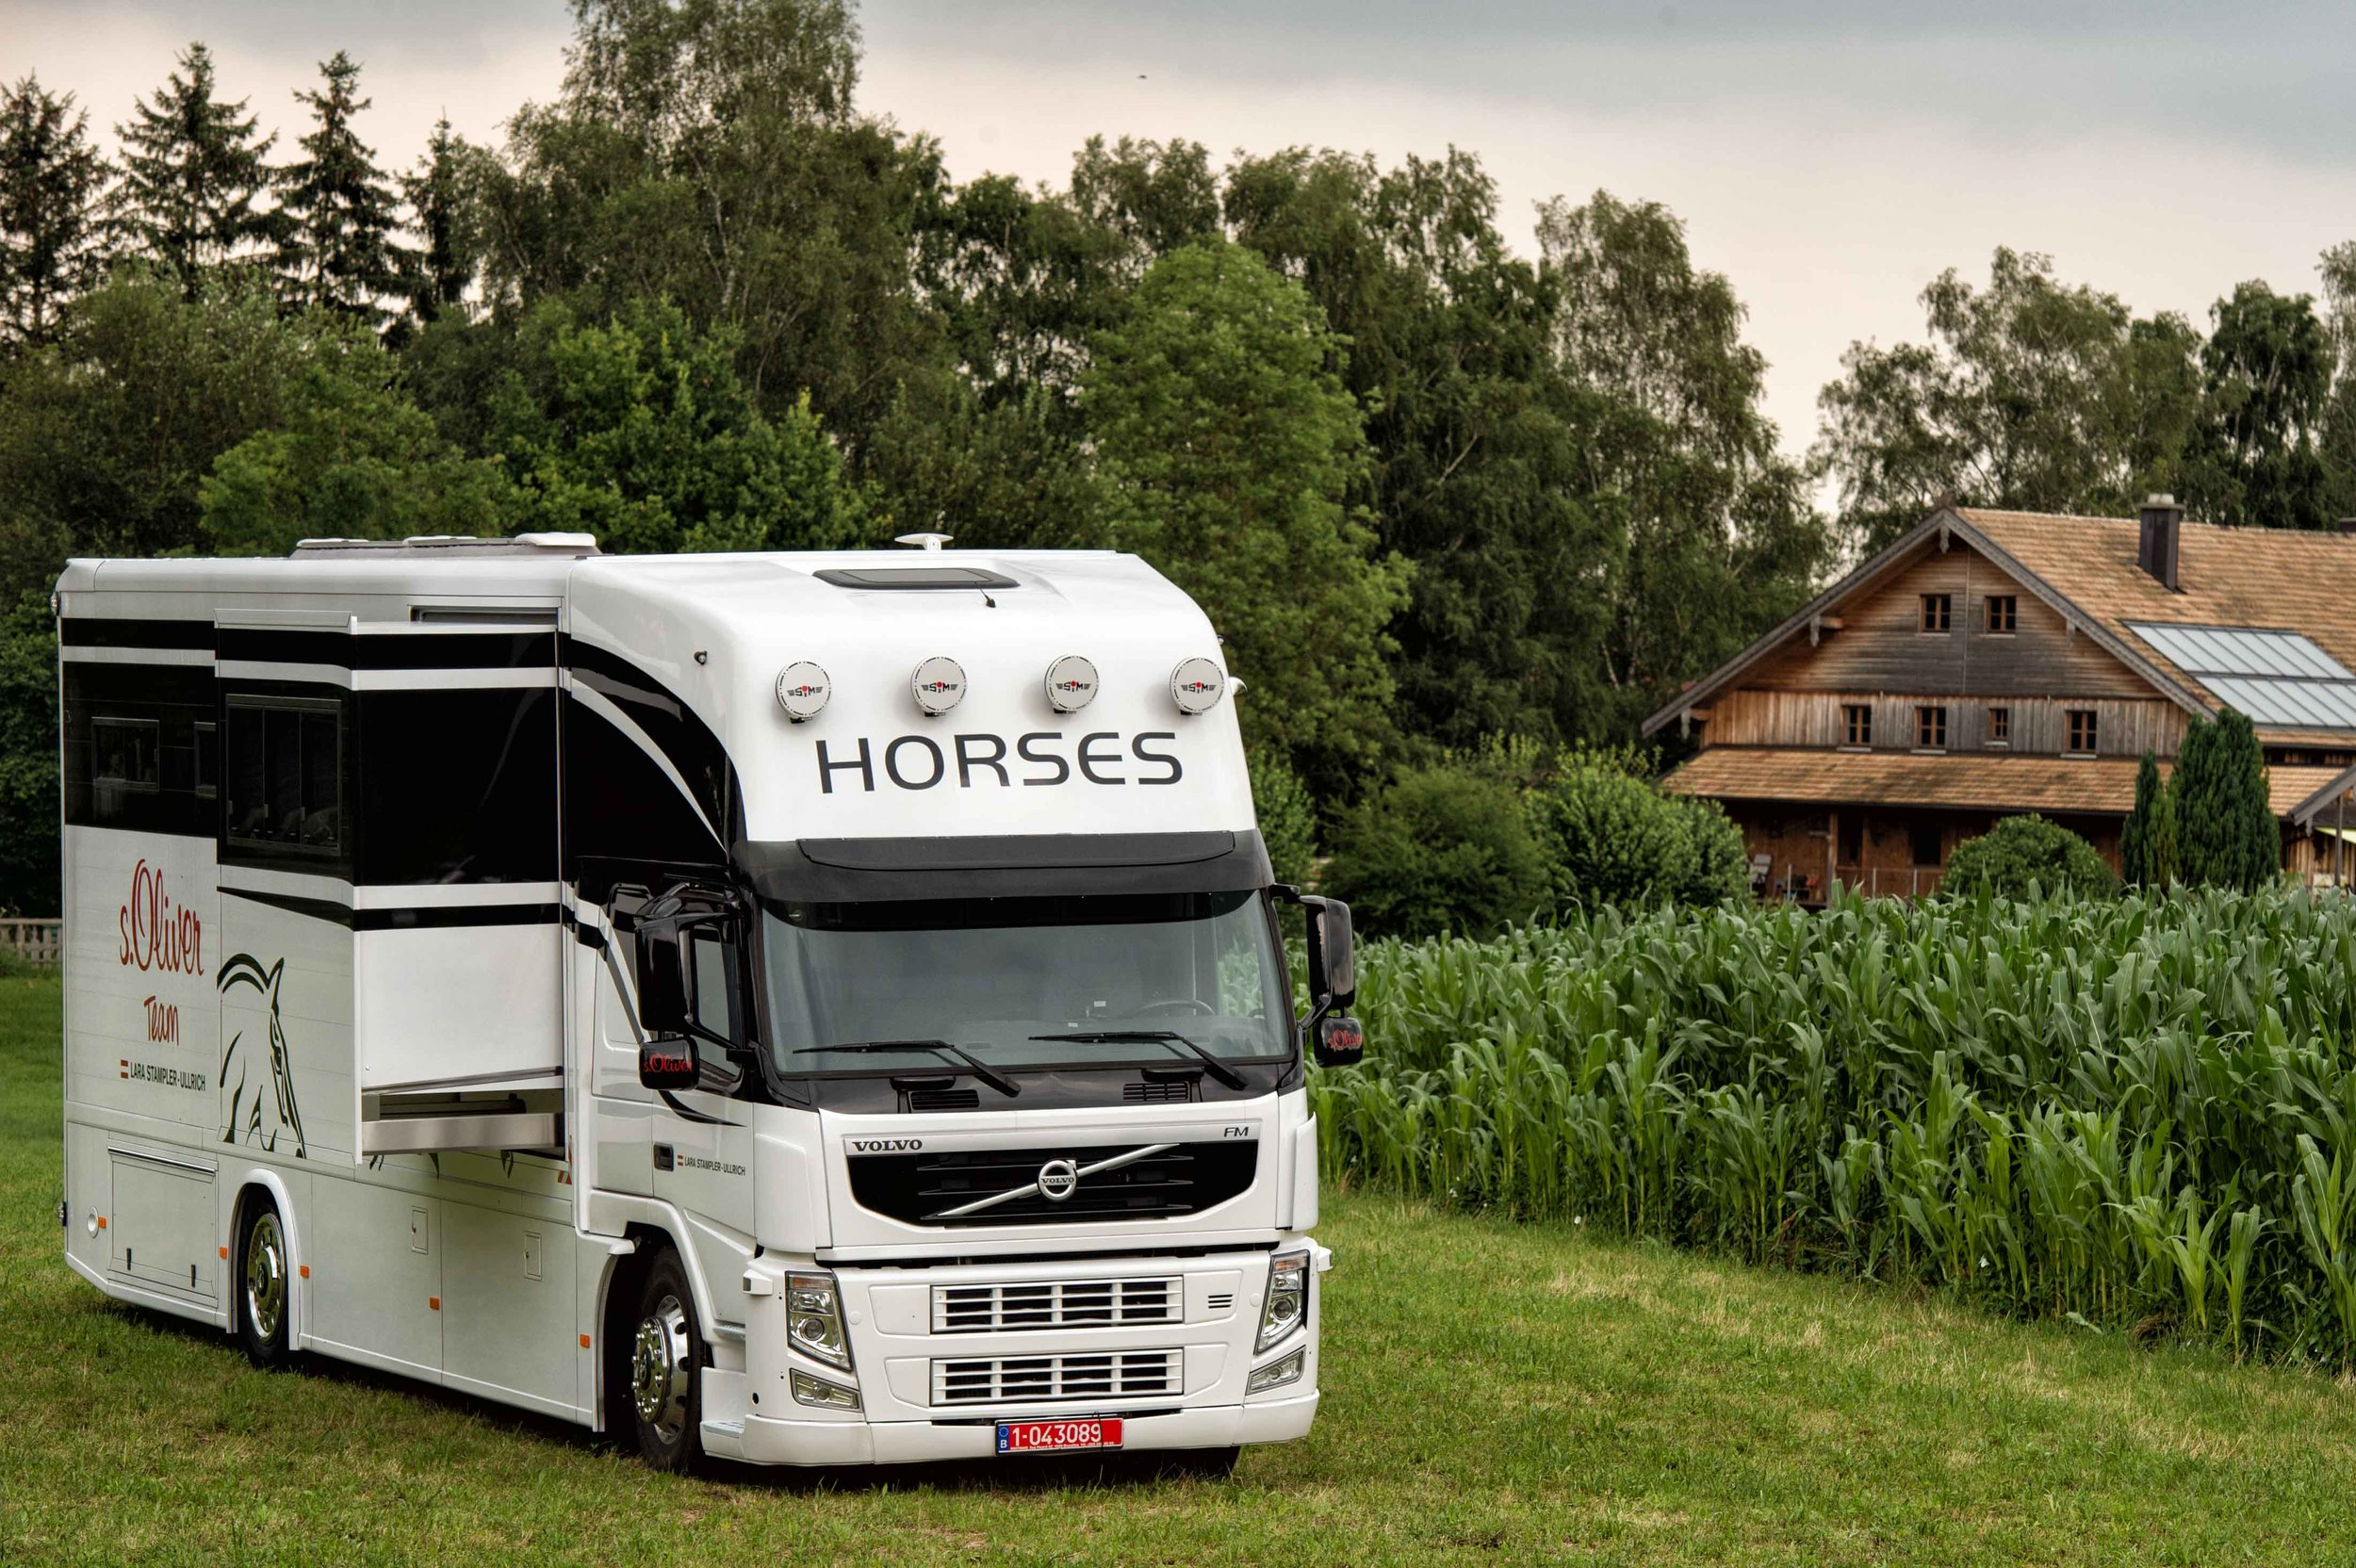 Horse Truck S.Oliver Aniko Towers Photo LR-185.jpg